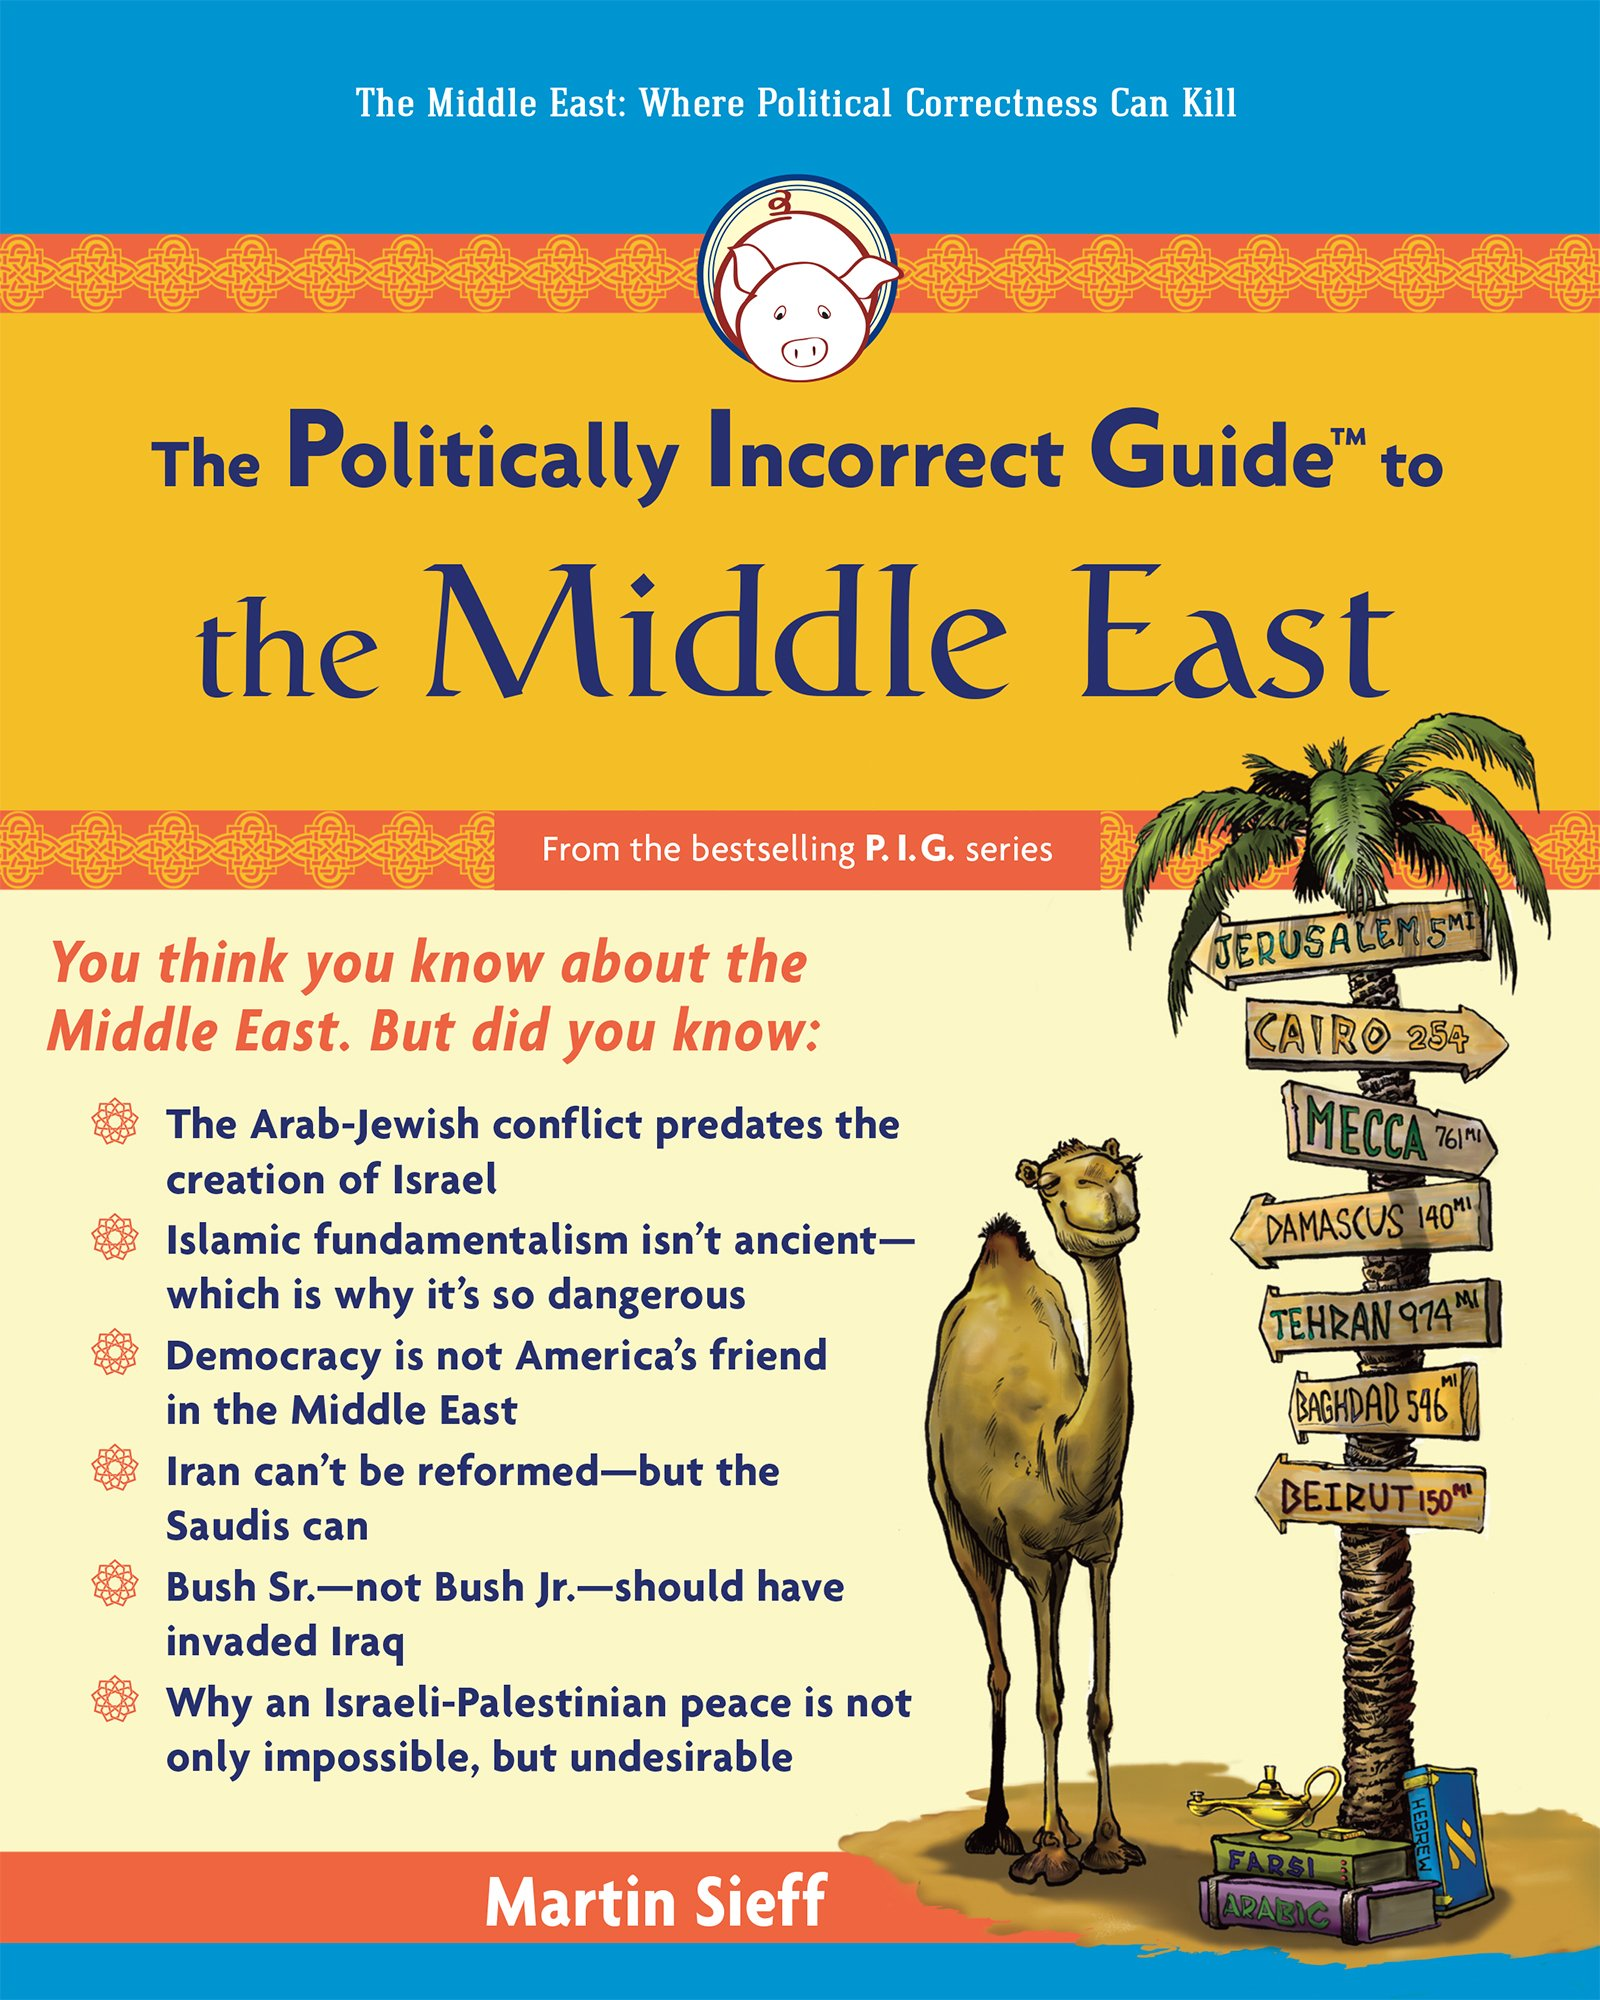 The Politically Incorrect Guide to the Middle East - Martin Sieff  epub/mobi